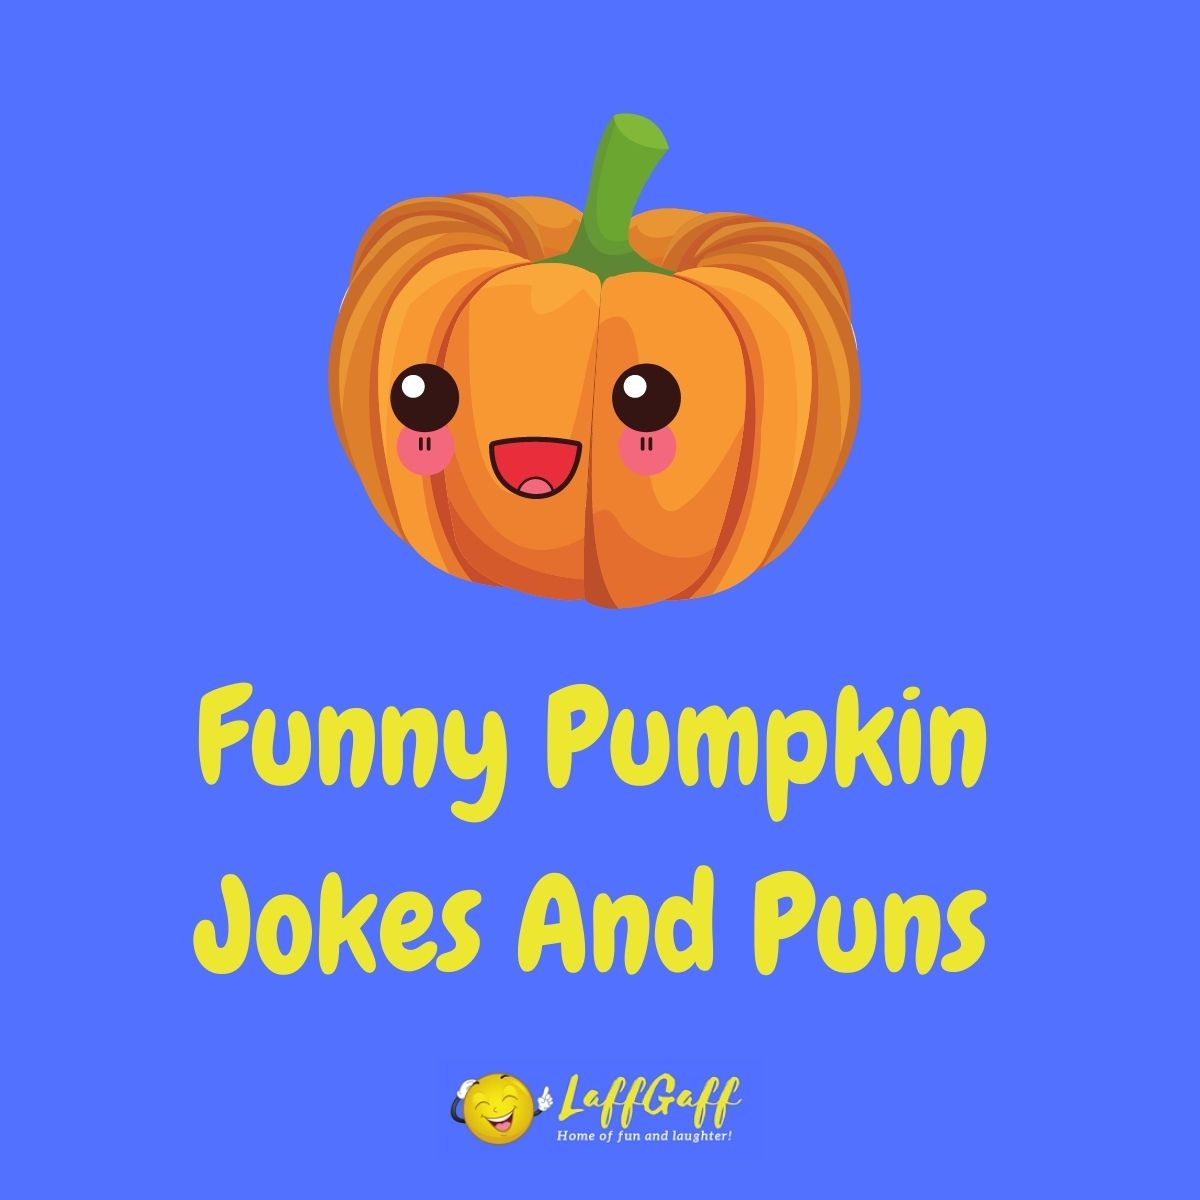 Featured image for a page of funny pumpkin jokes and puns.